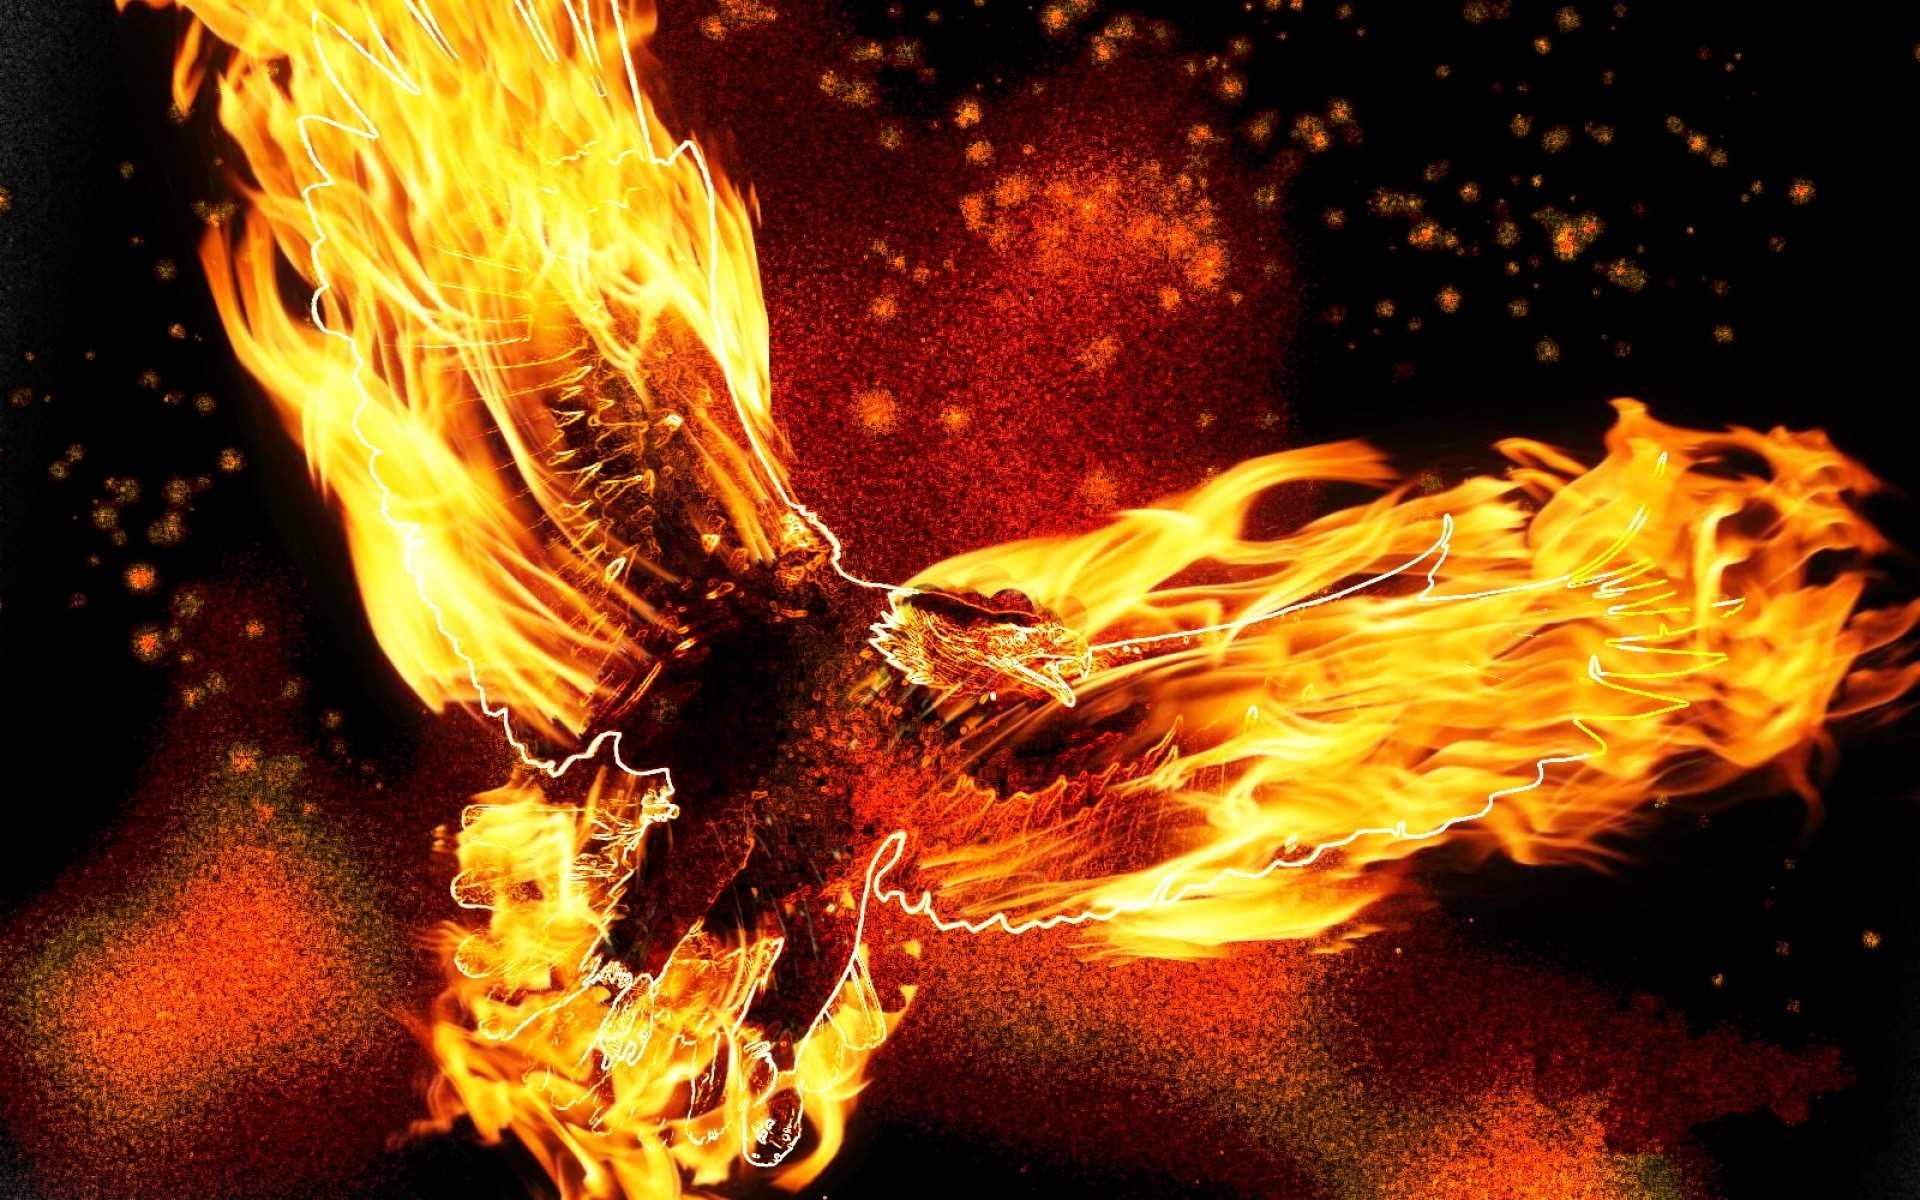 1280x800 Hd Wallpaper 3d Fire Eagle Wallpapers Hd Desktop And Mobile Backgrounds